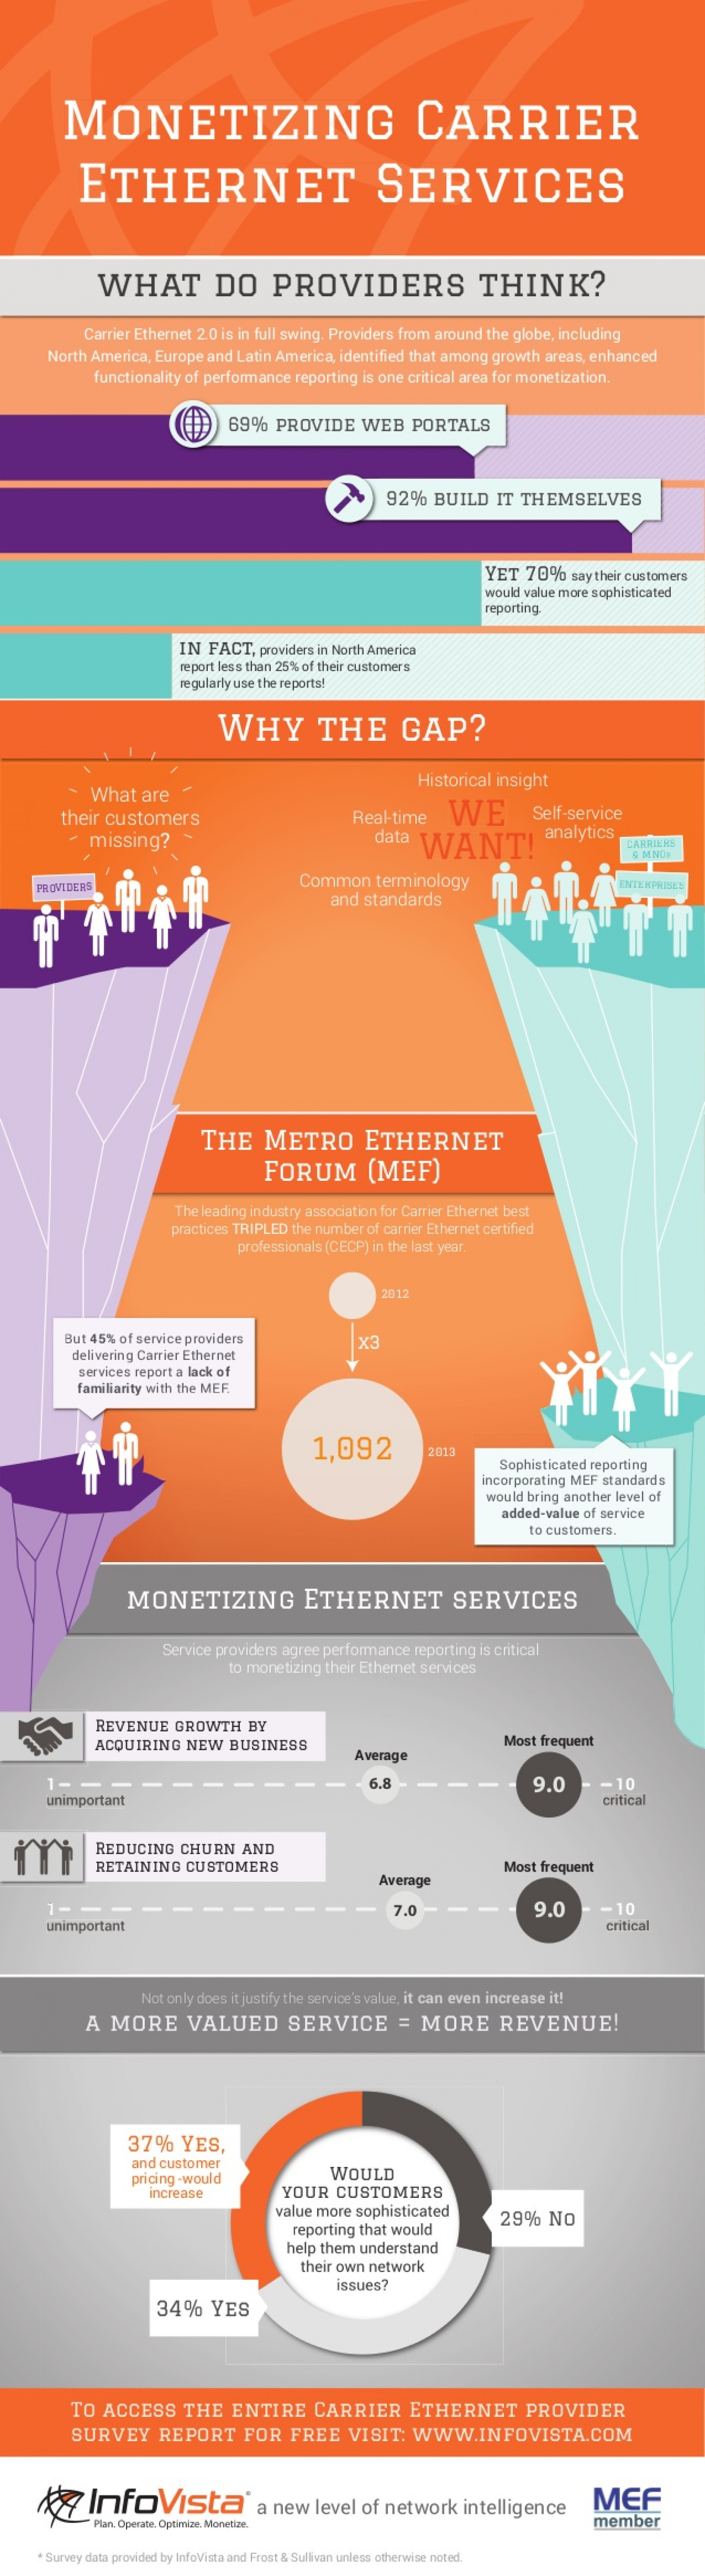 Monetizing Carrier Ethernet Services Infographic